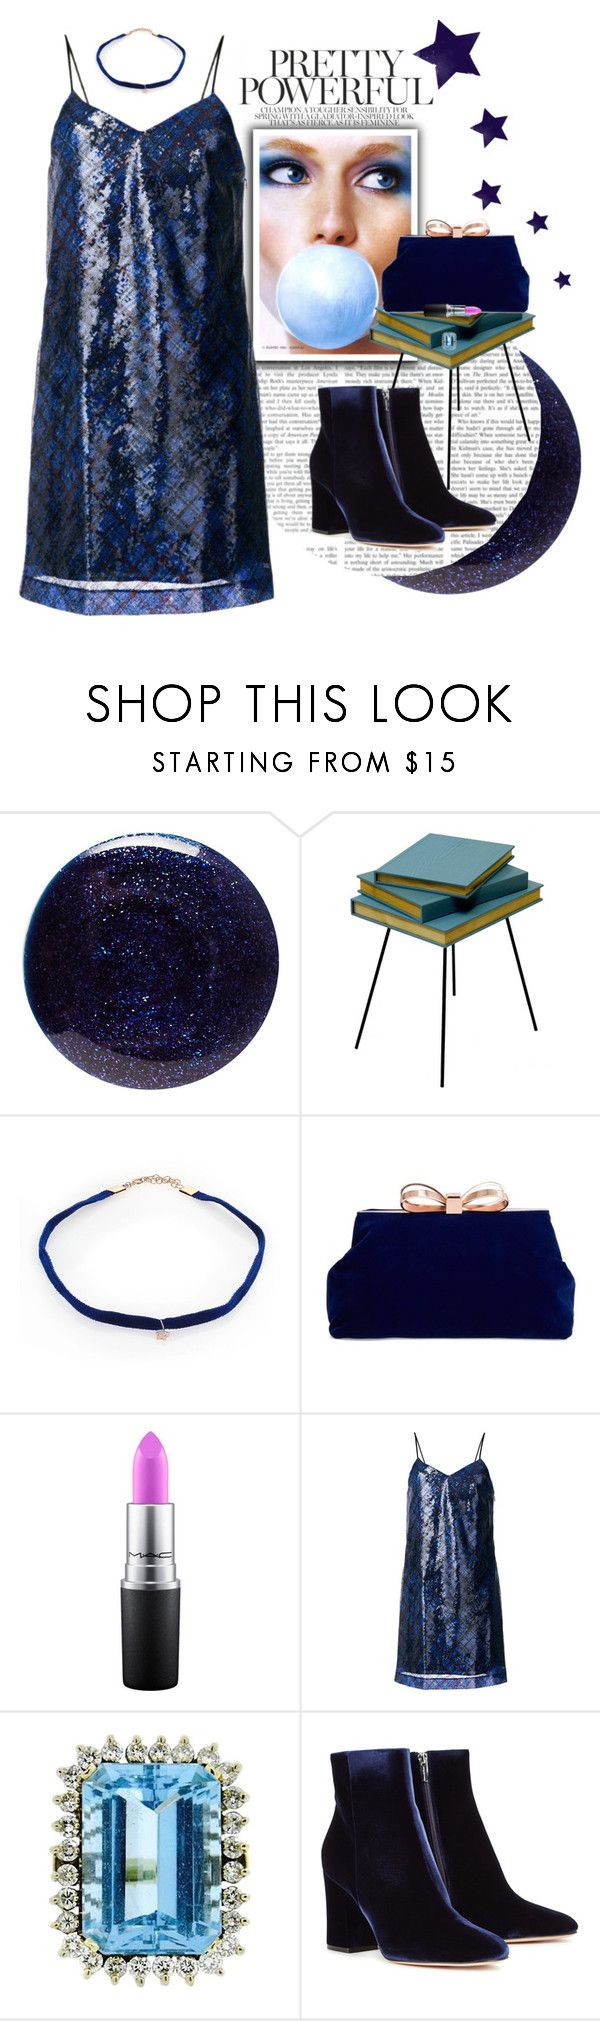 """""""Starry Autumn Dance Dress"""" by taste-for-life ❤ liked on Polyvore featuring Lauren B. Beauty, Valsecchi 1918, Kismet by Milka, Ted Baker, MAC Cosmetics, Hilfiger Collection, Gianvito Rossi, contest and generalgroups"""